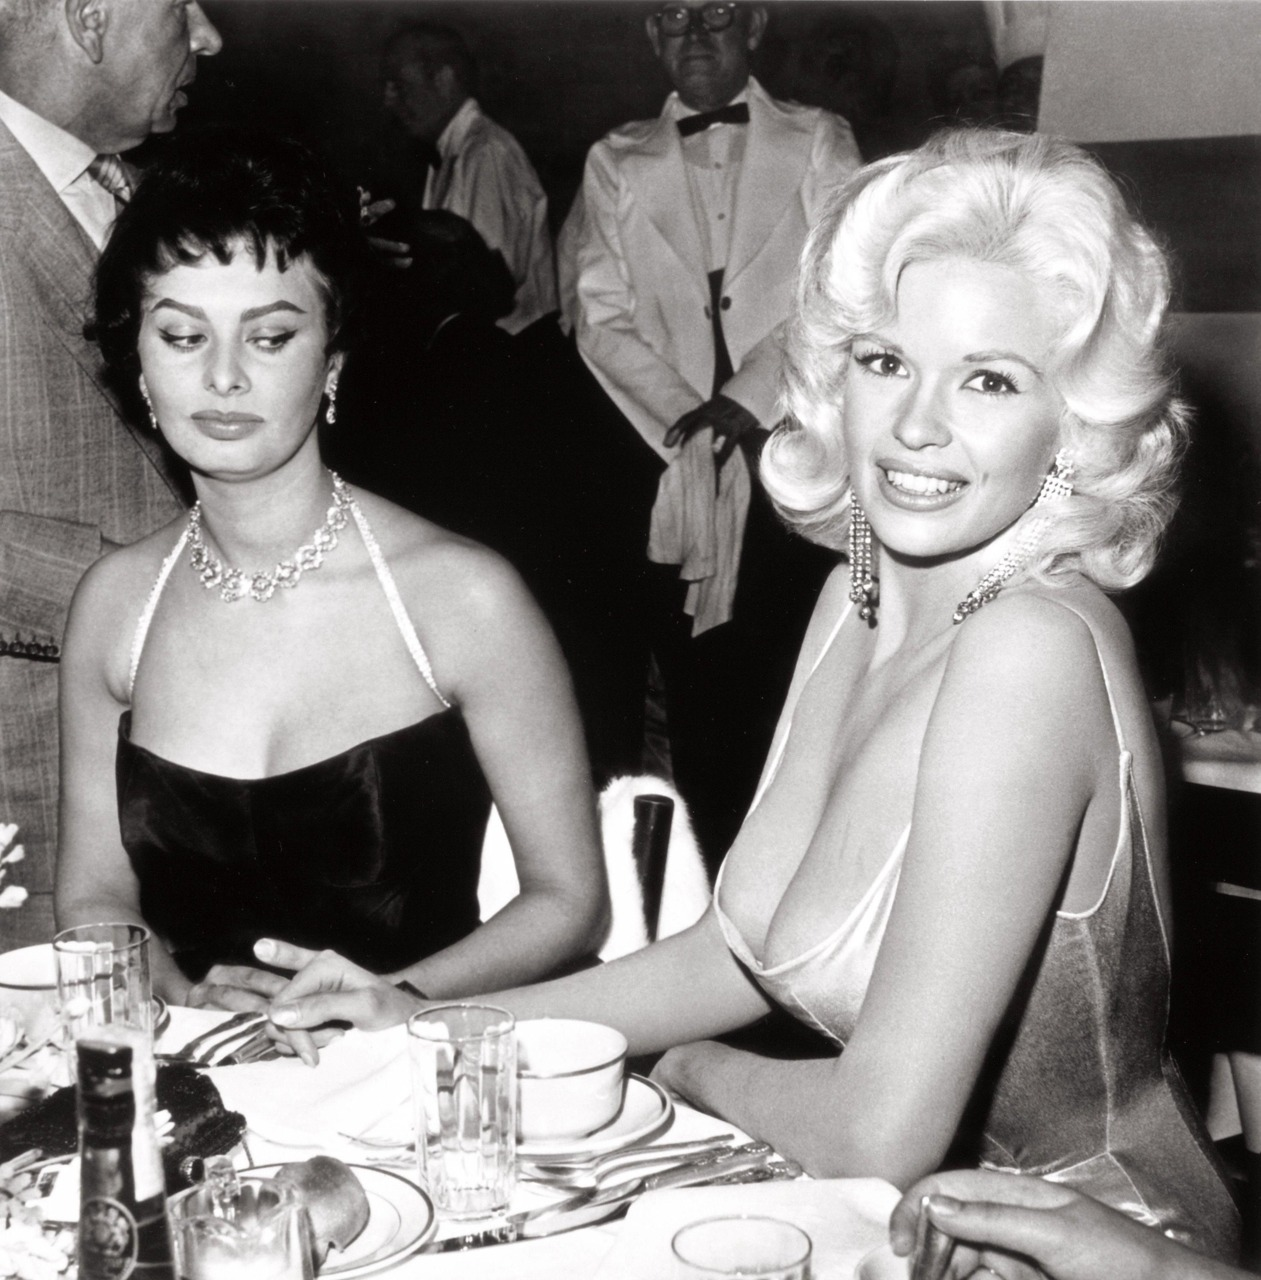 Jayne Mansfield and Sophia Loren at Romanoff's in Beverly Hills by Joe Shere, 1958